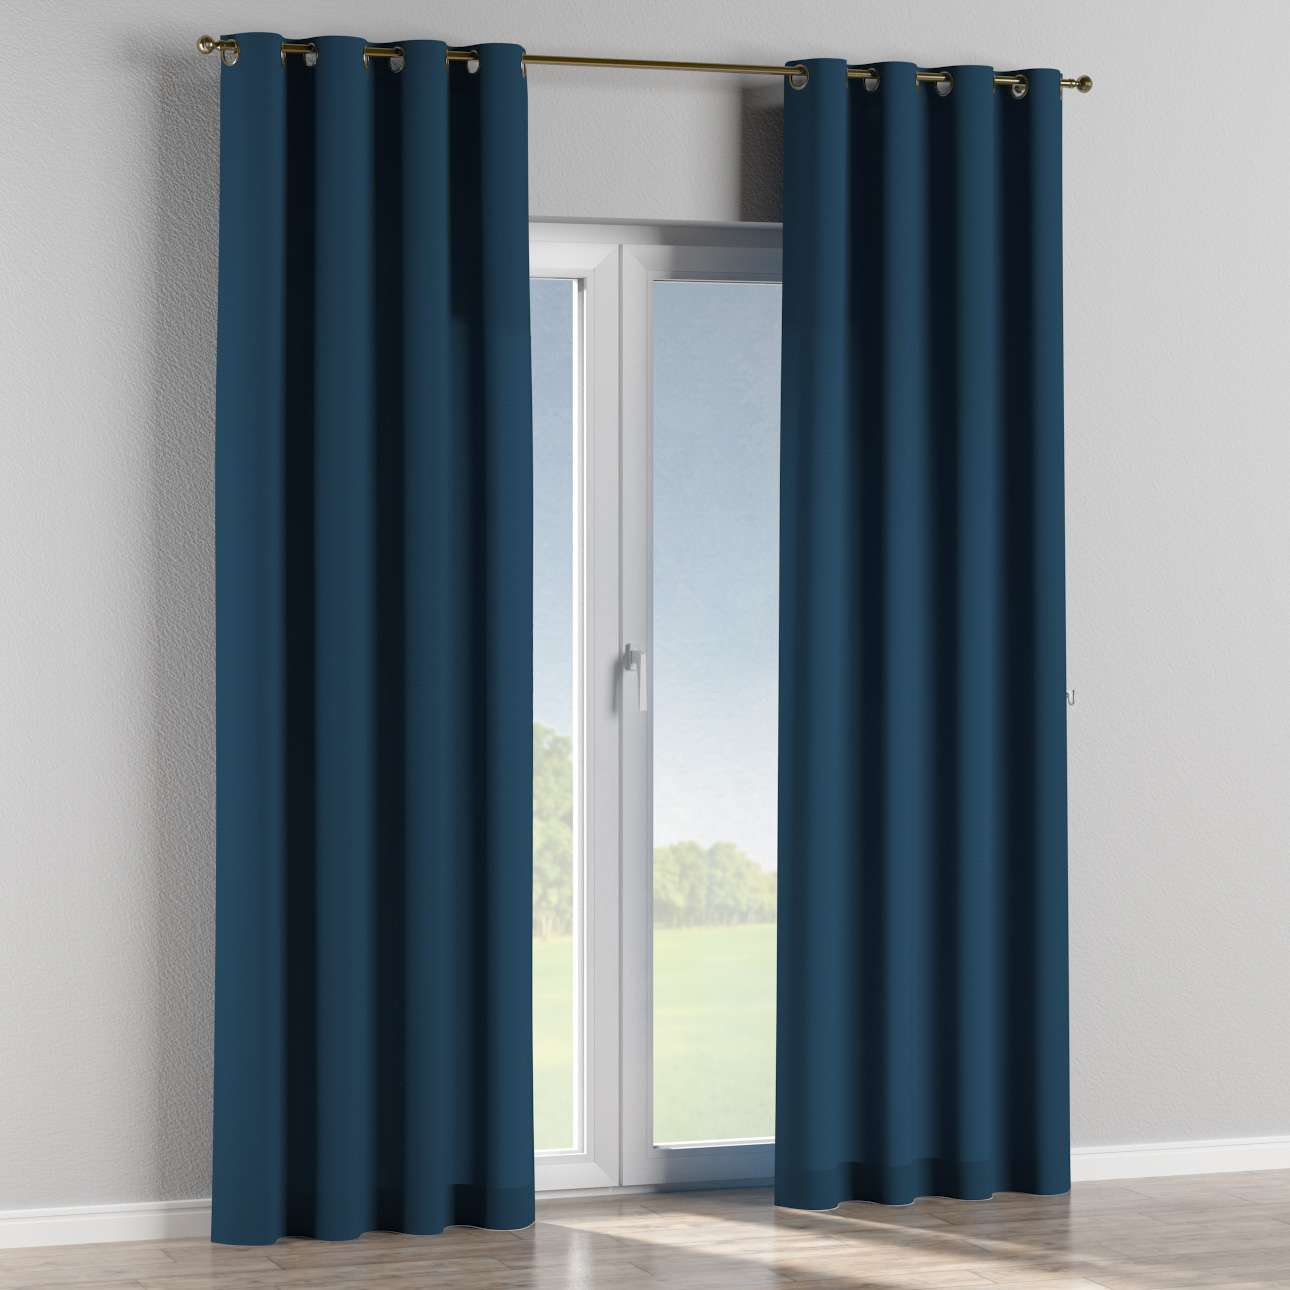 Eyelet curtains 130 x 260 cm (51 x 102 inch) in collection Panama Cotton, fabric: 702-30